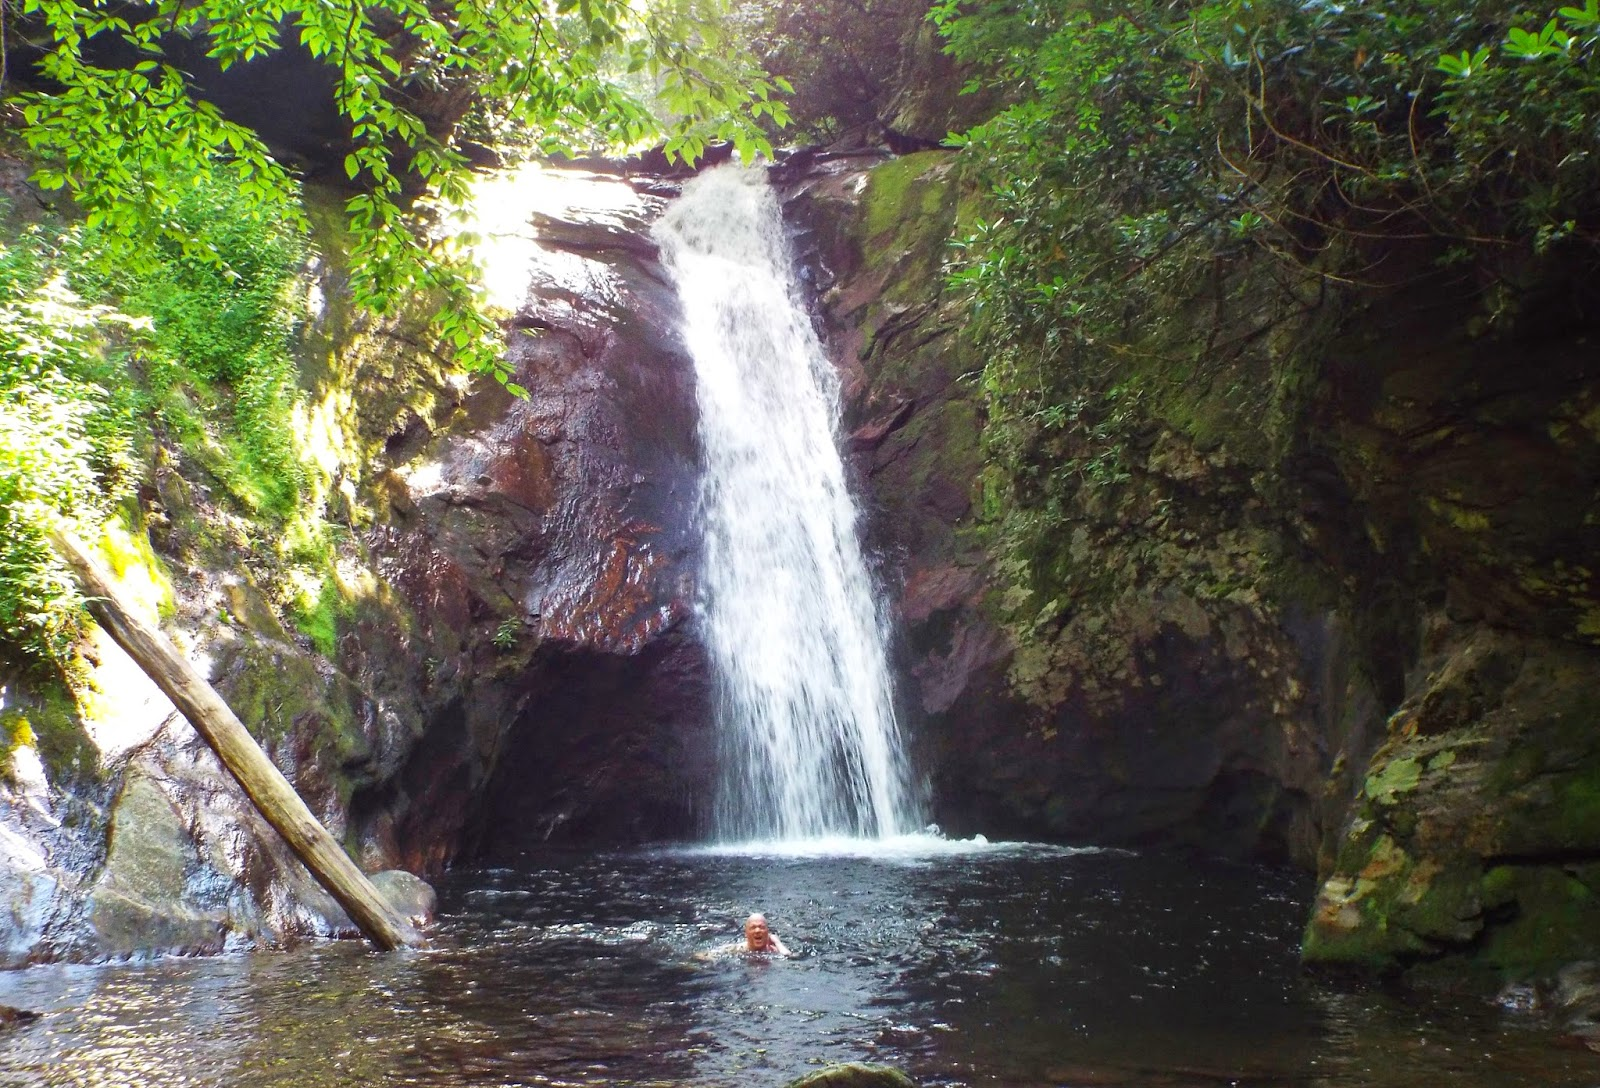 Swimming at Courthouse Falls